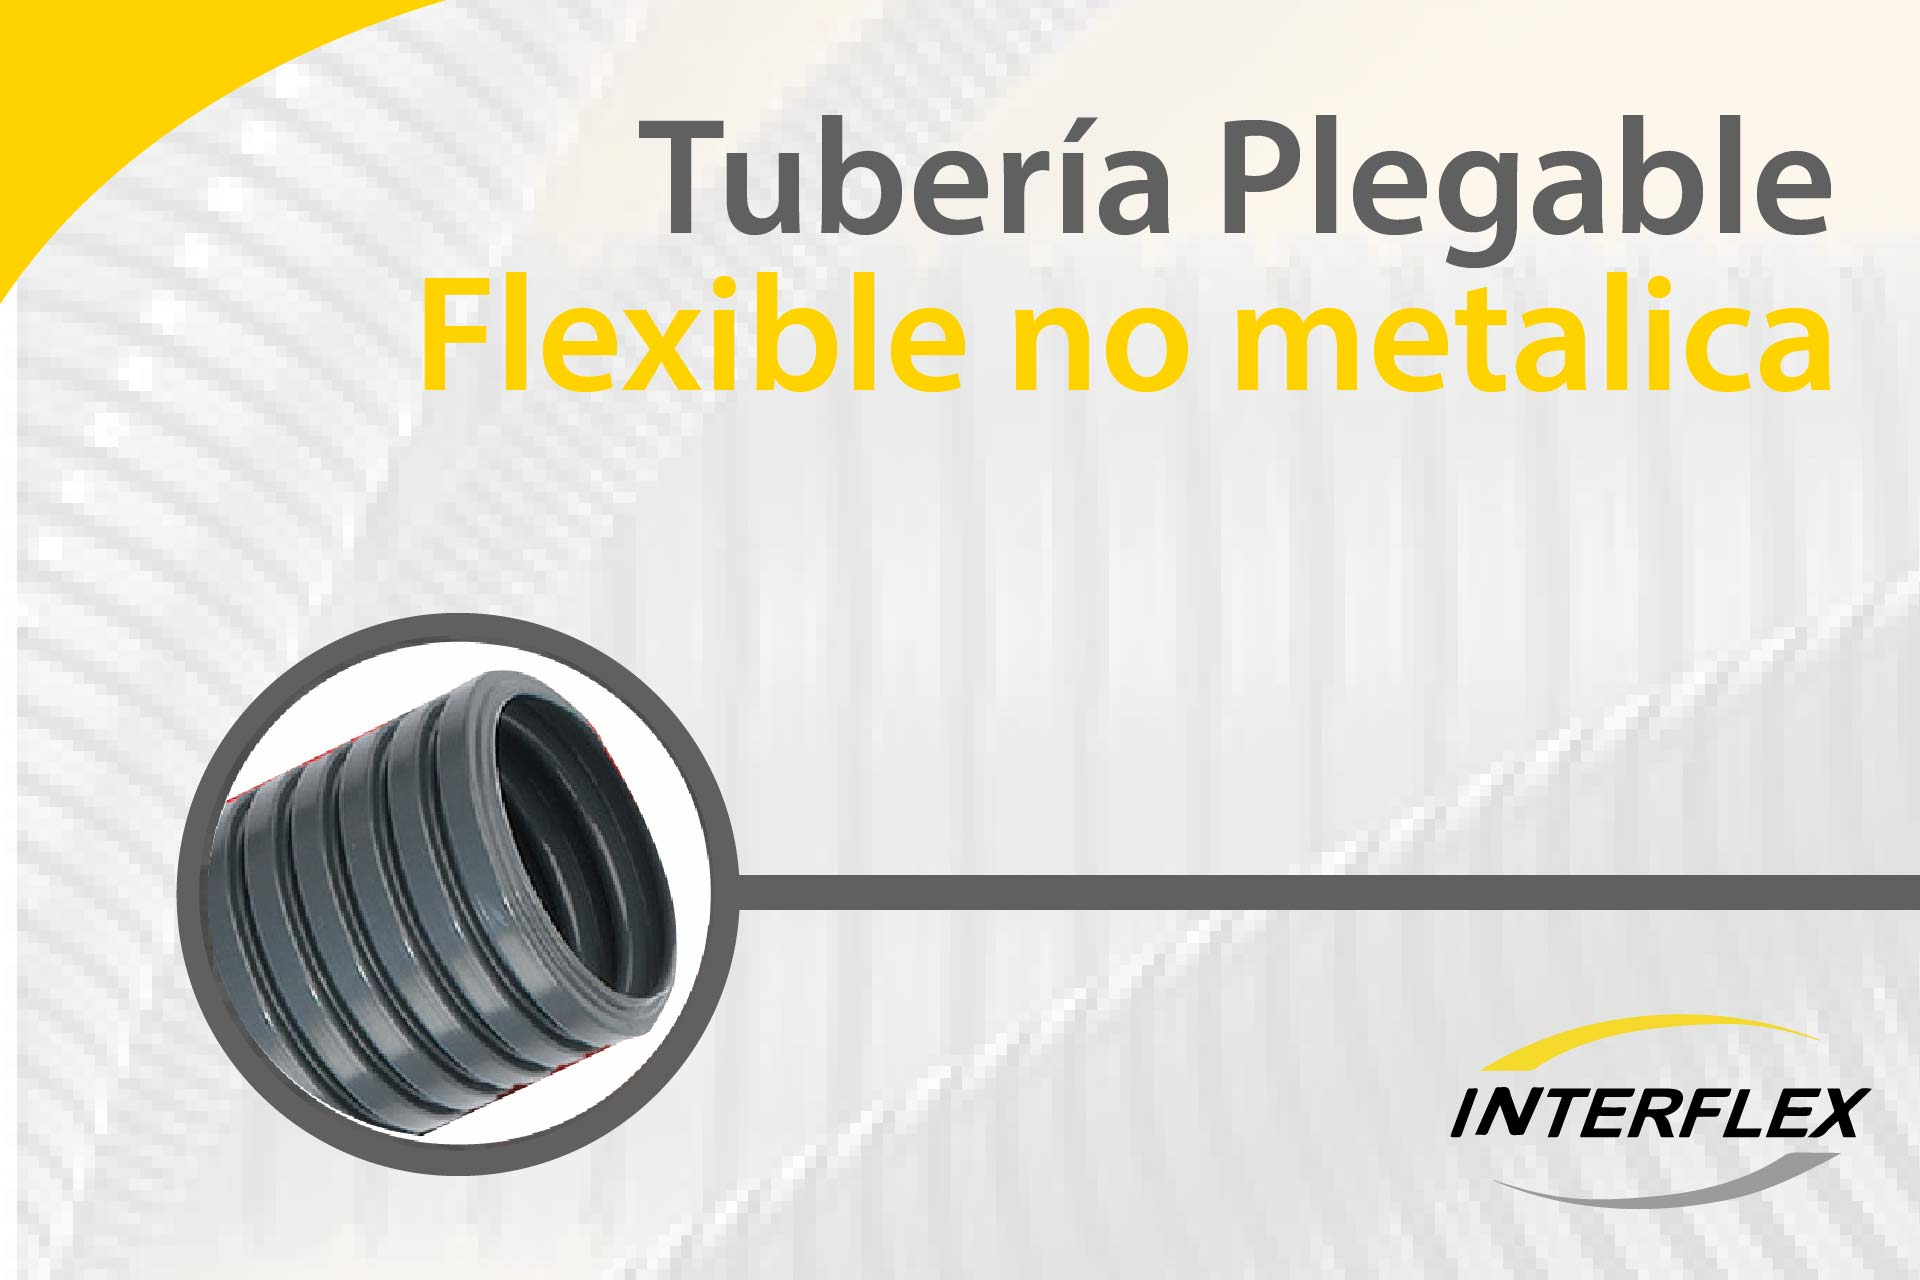 ¡Tubería flexible!  Interflex